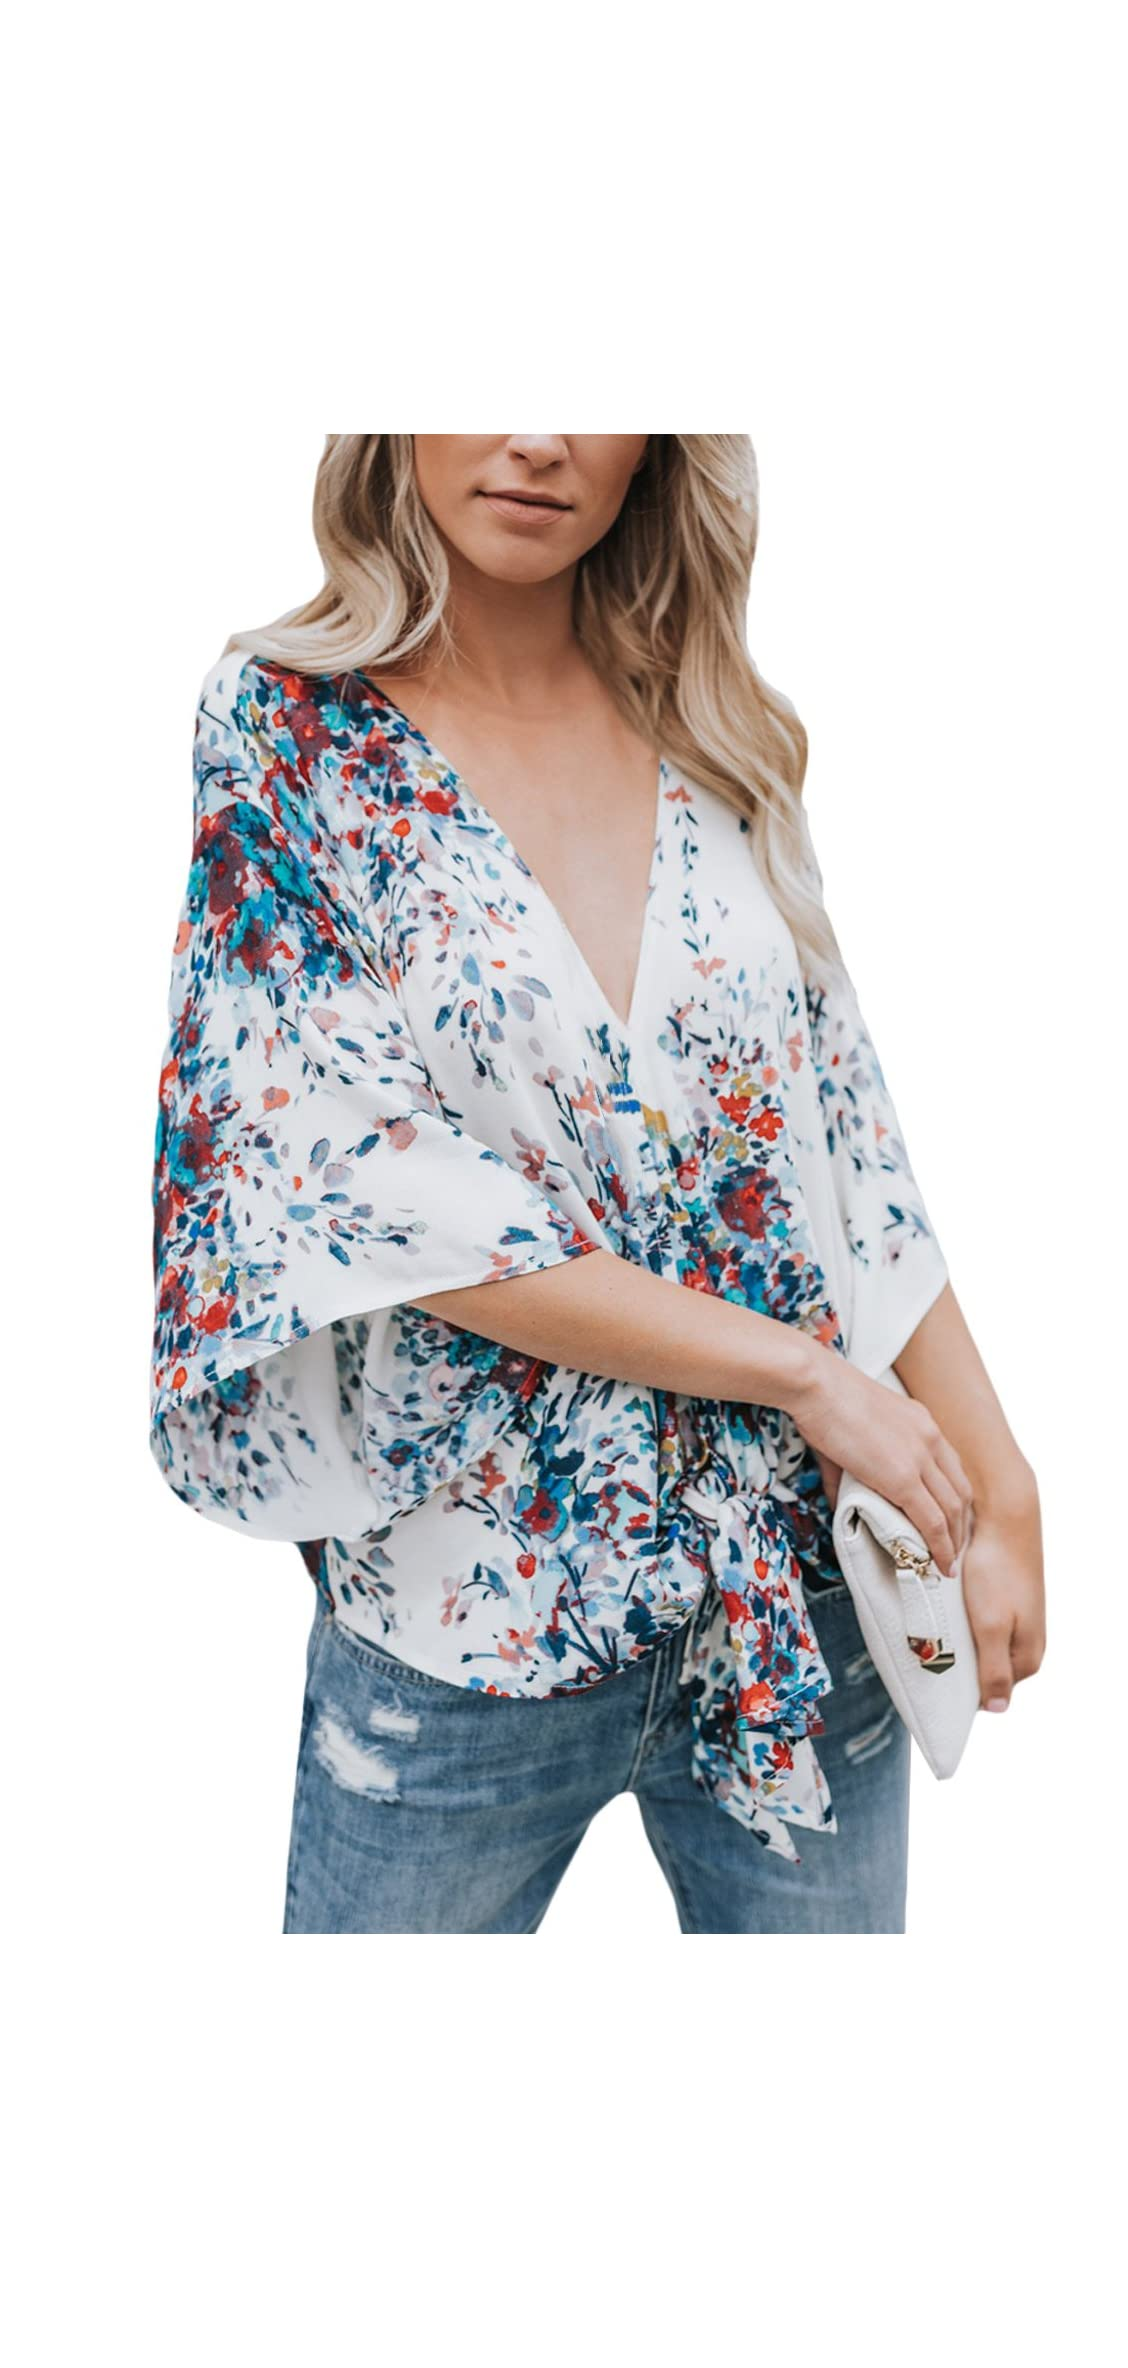 Women's Blouse Floral Print Lightweight Tie Front